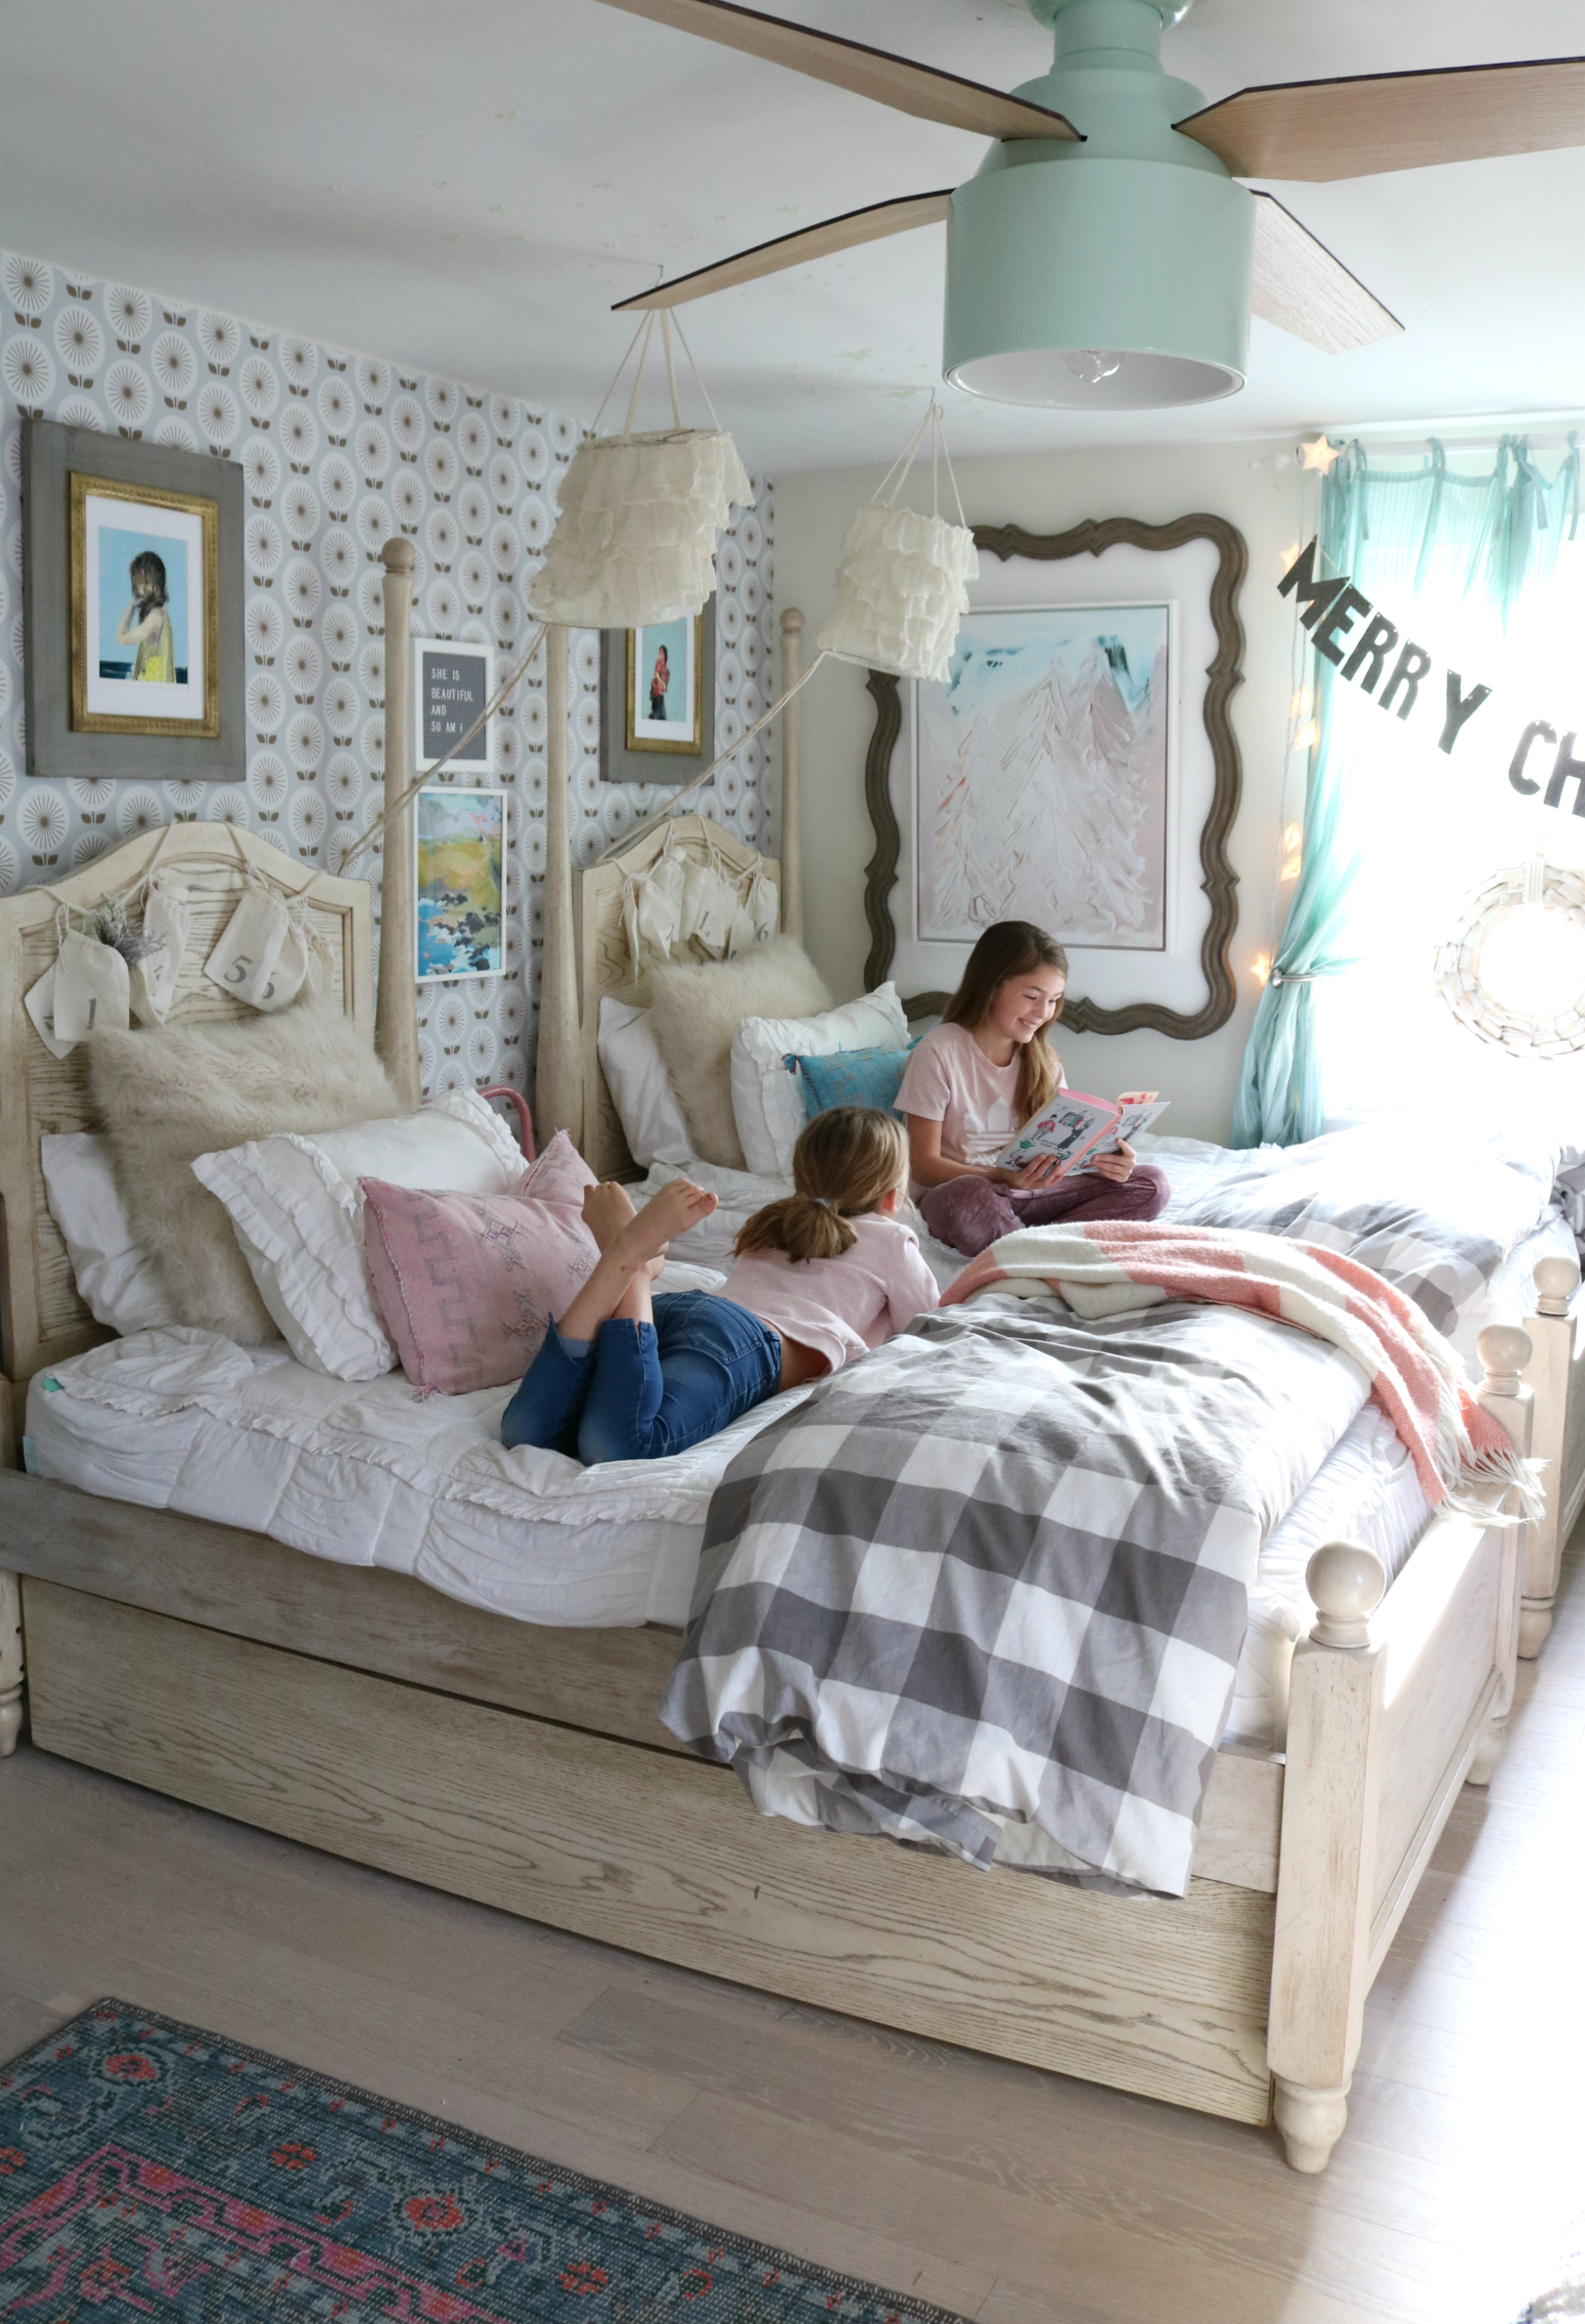 Pin By Cristina Remodelacasa On Bailey S Room In 2020 Shared Girls Bedroom Shared Girls Room Shared Bedroom